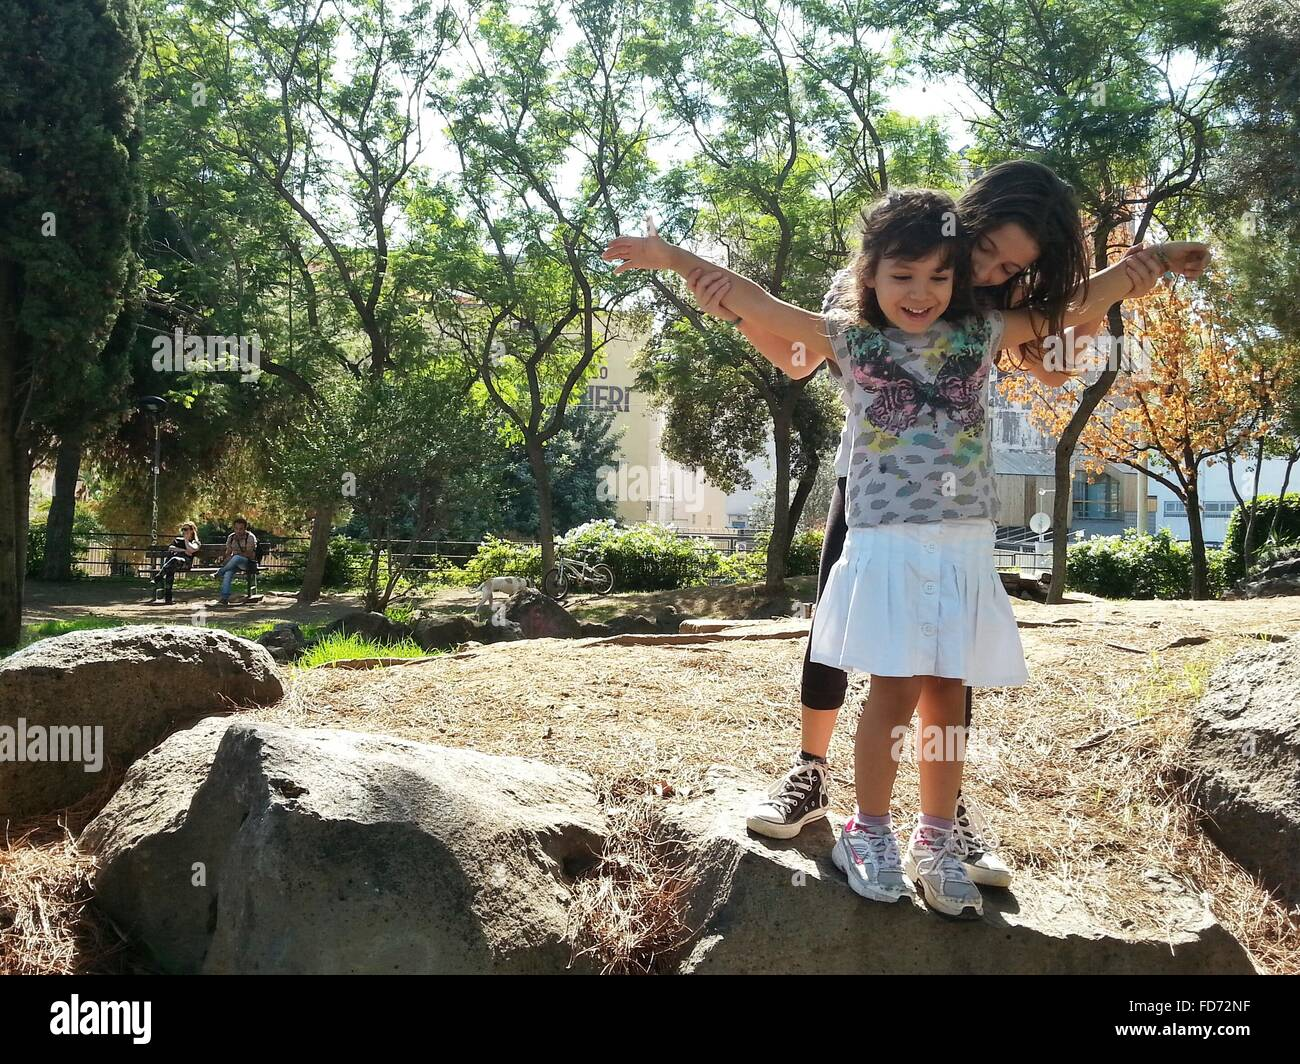 Siblings Enjoying In Park - Stock Image